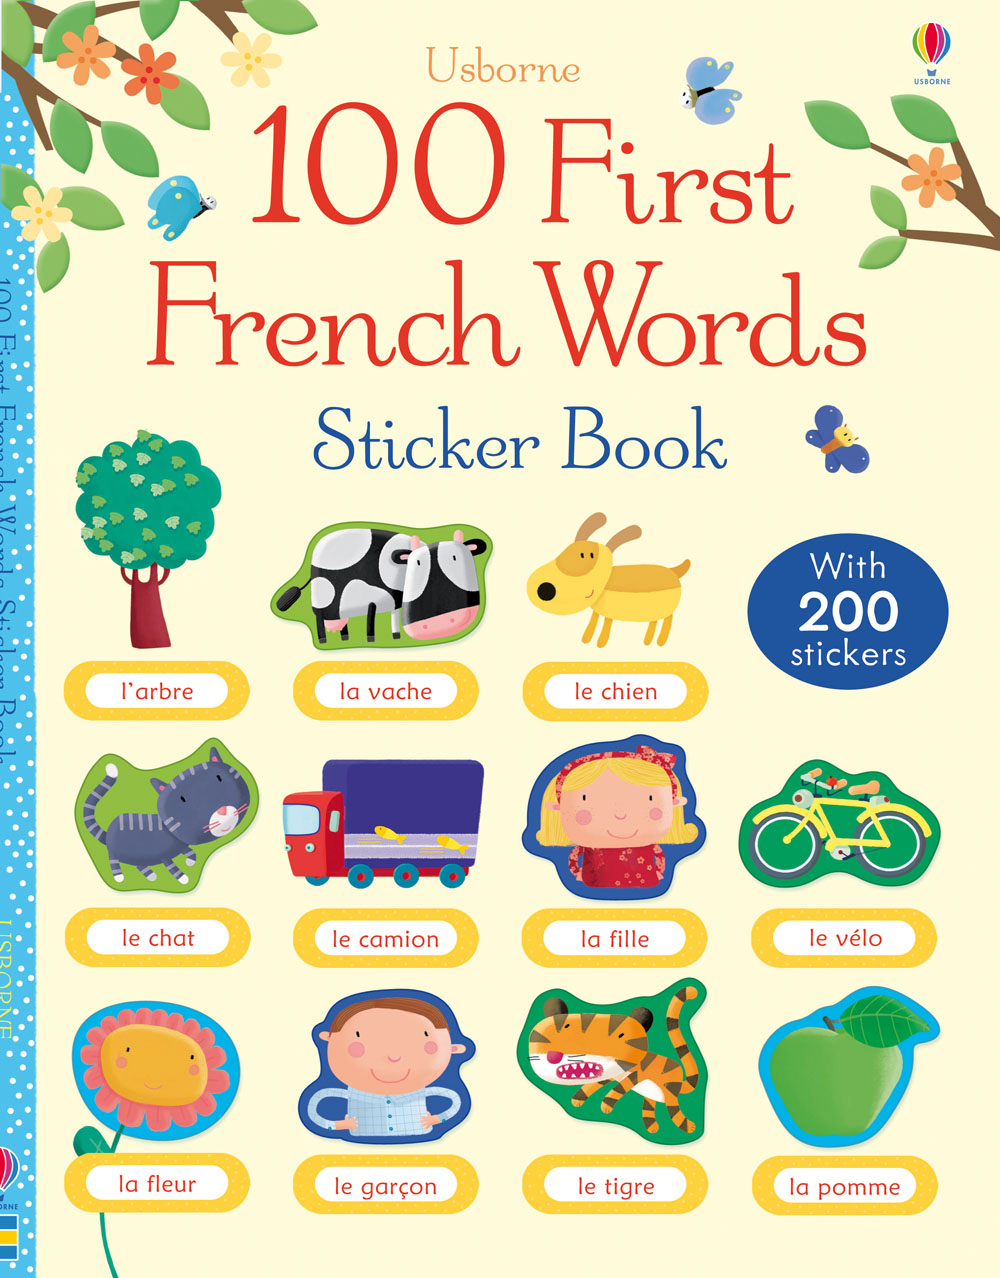 """100 First French words sticker book"""" at Usborne Books at Home"""